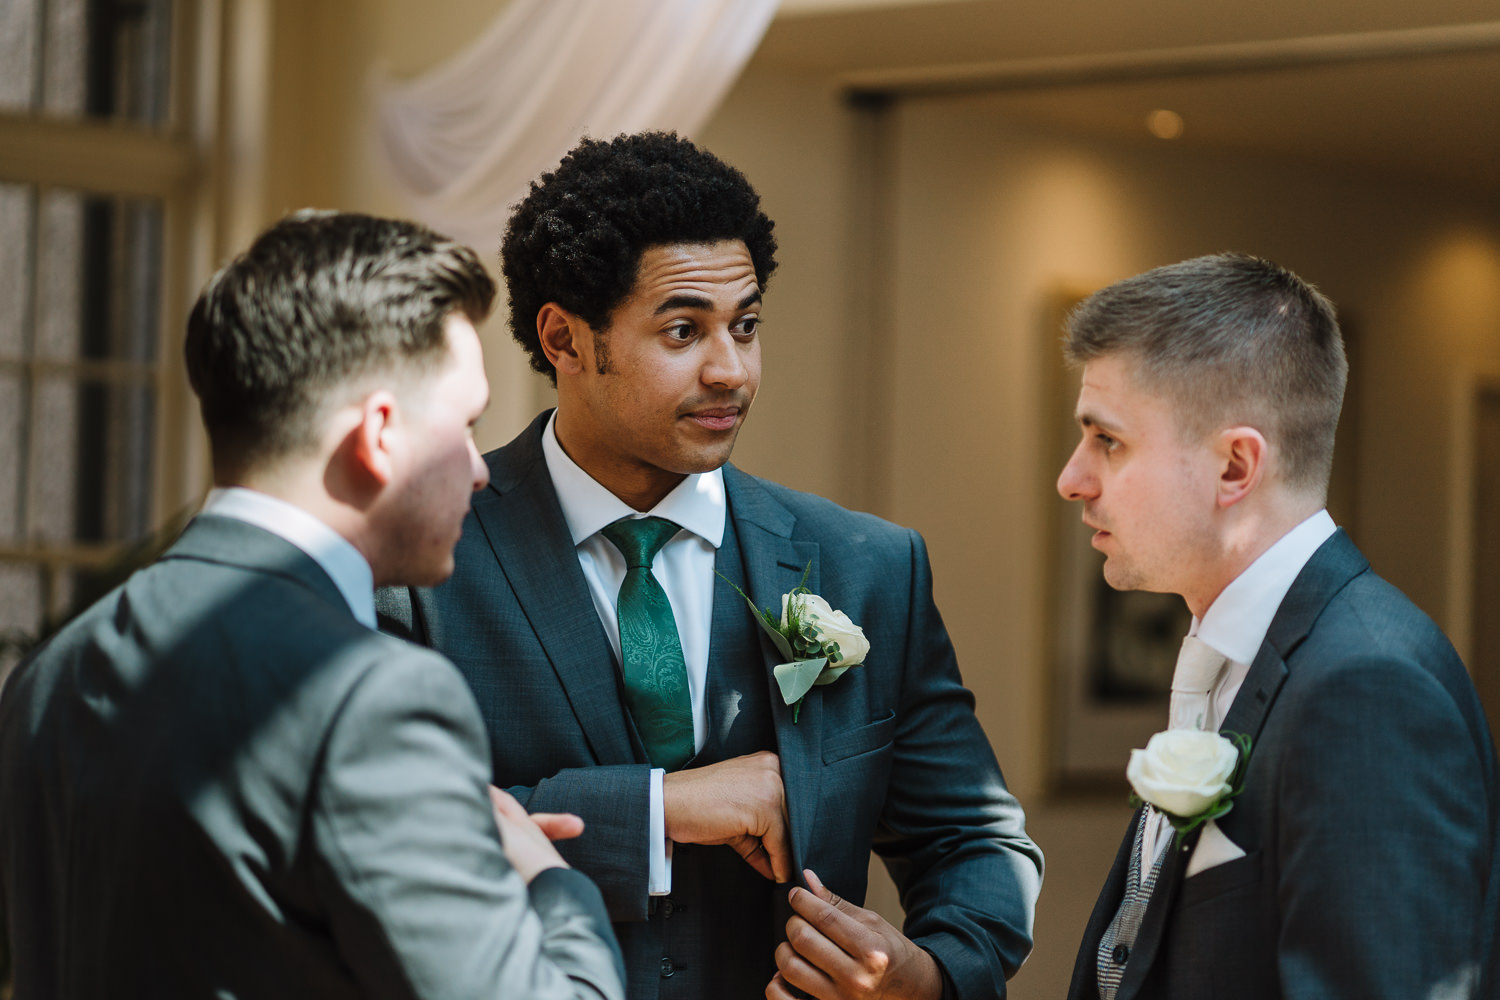 Groomsmen talking before service